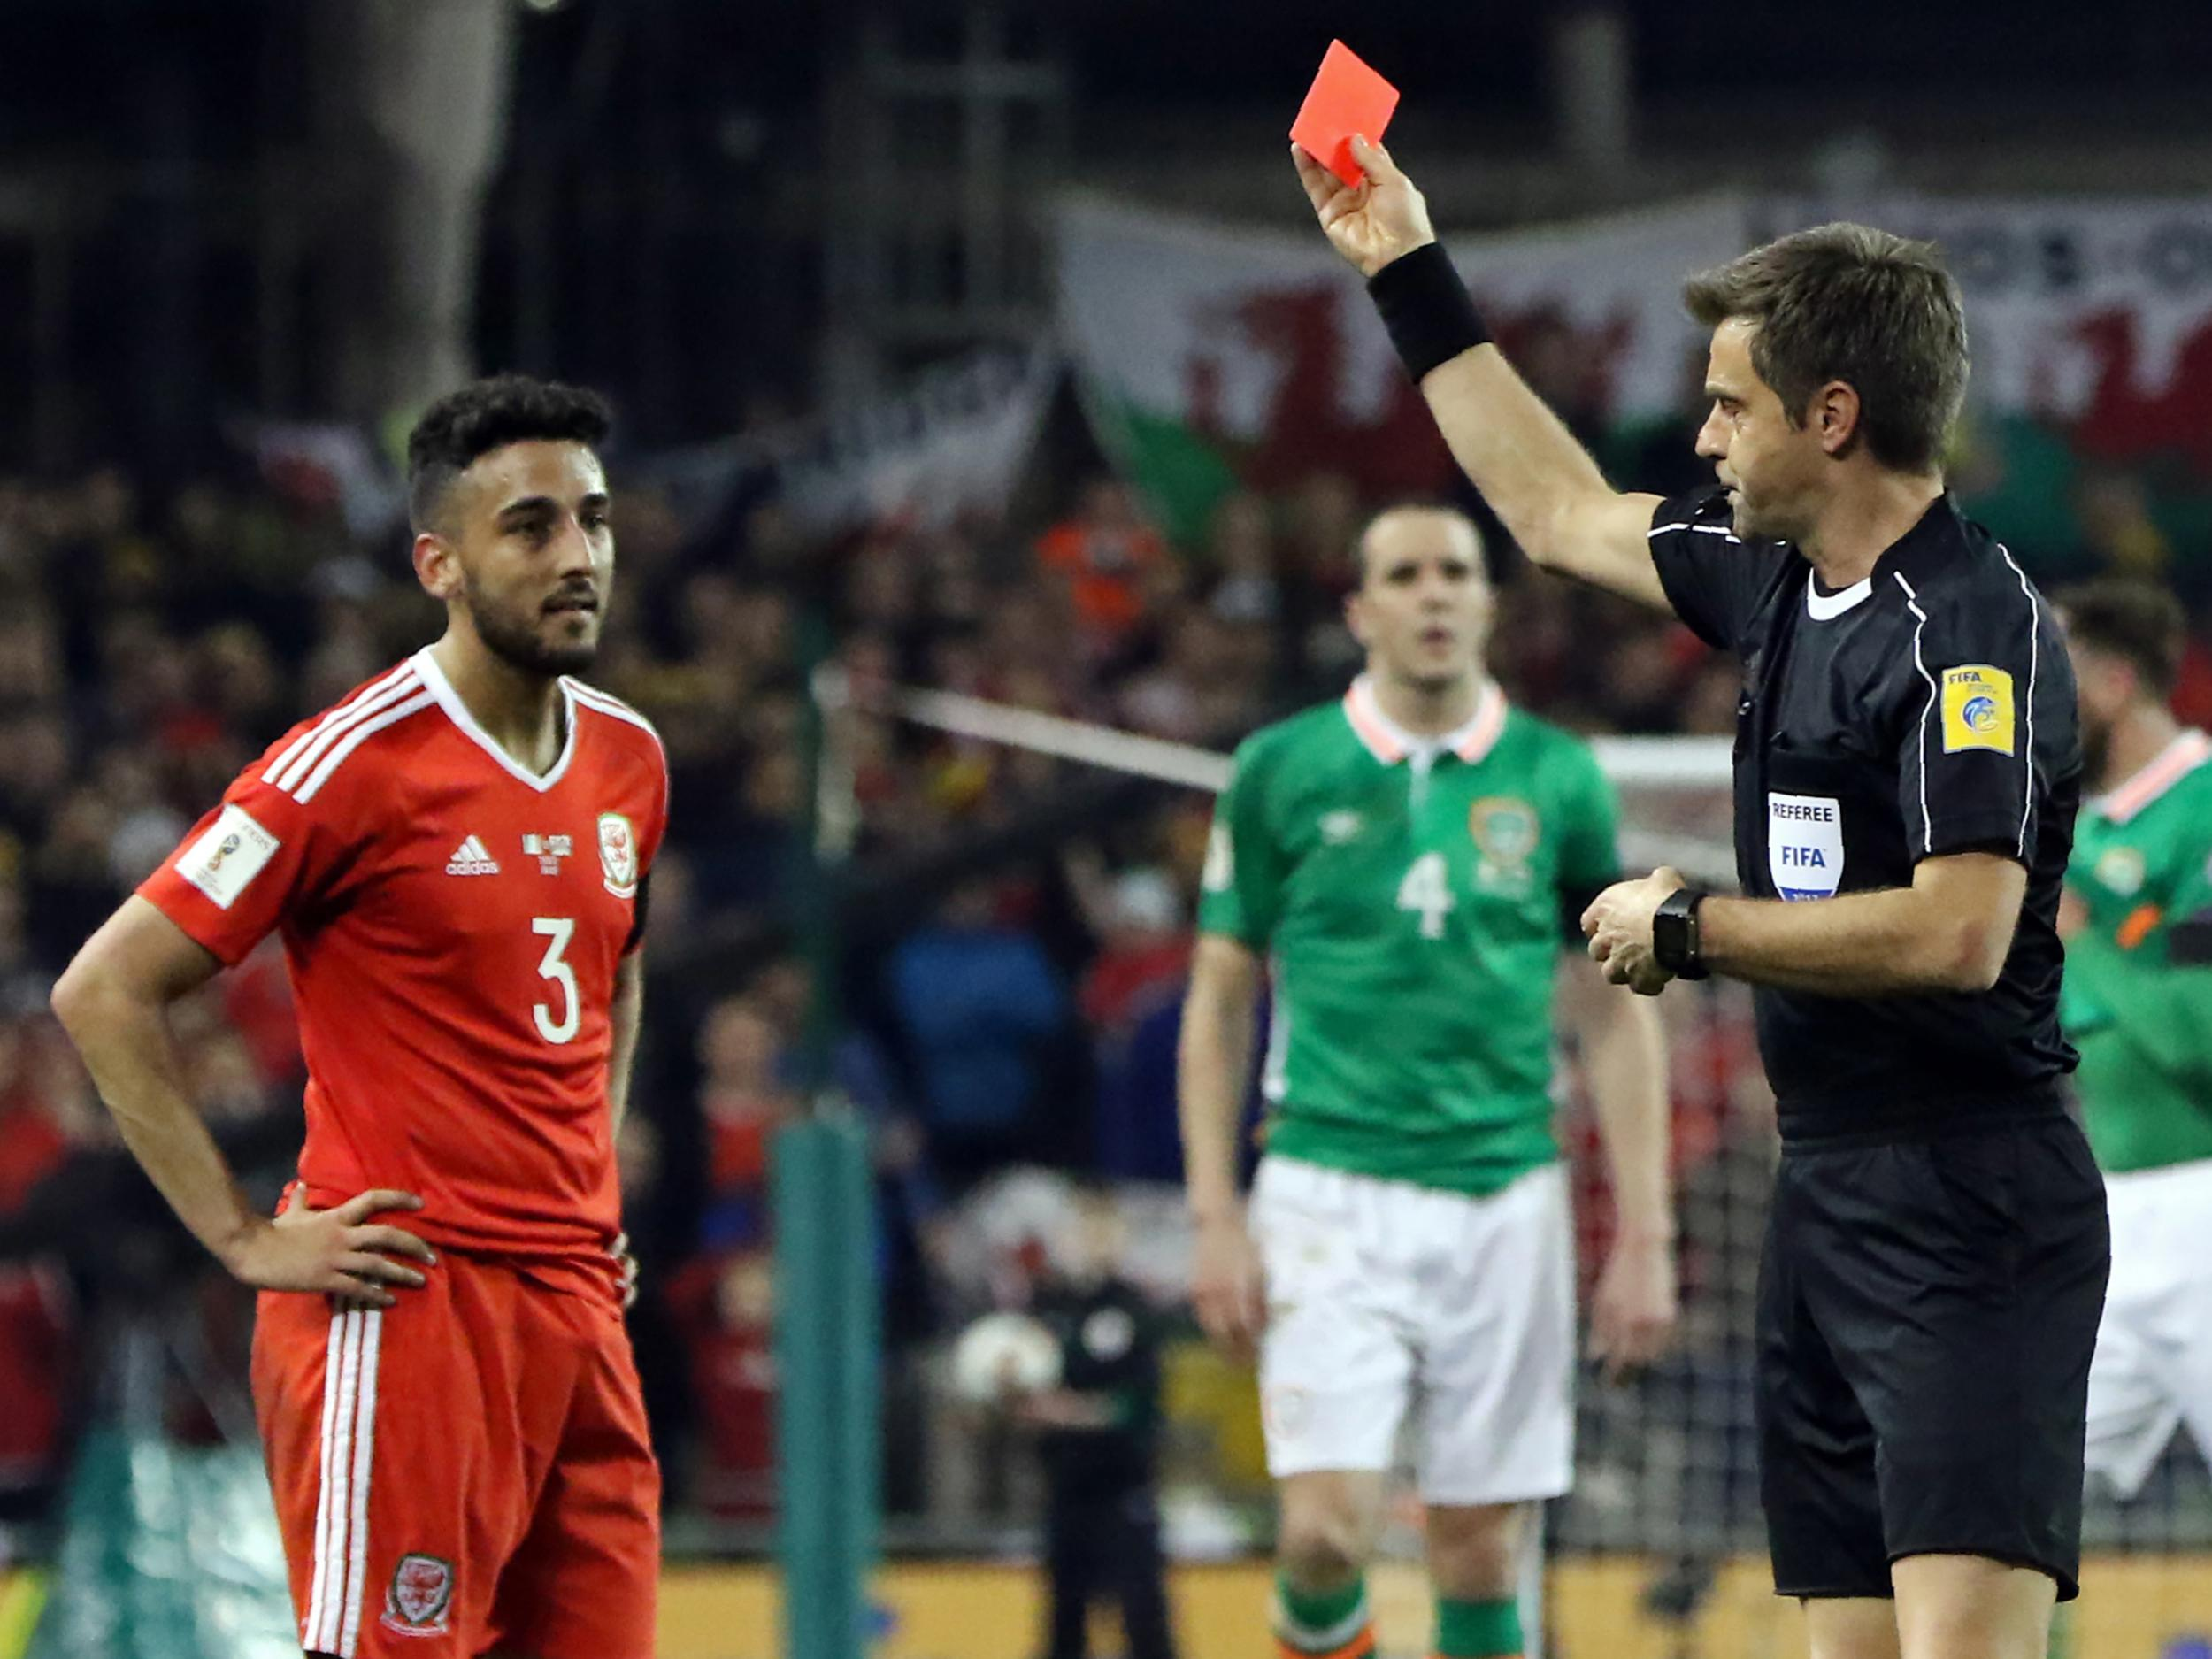 Fifa open proceedings against Neil Taylor for tackle on Seamus Coleman during Republic of Ireland vs Wales